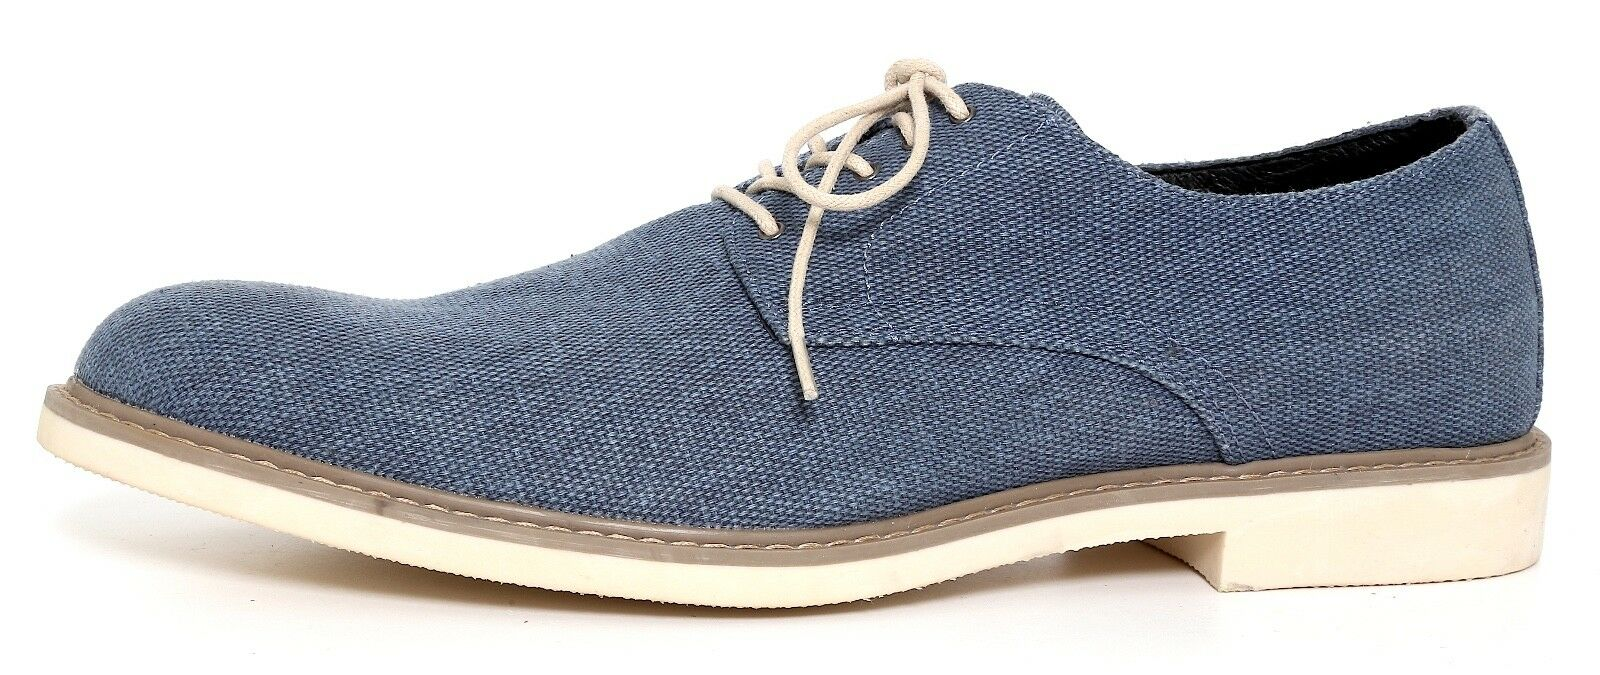 The Rail Xander Plain Toe Derby bluee Men Sz 45 EUR 1021